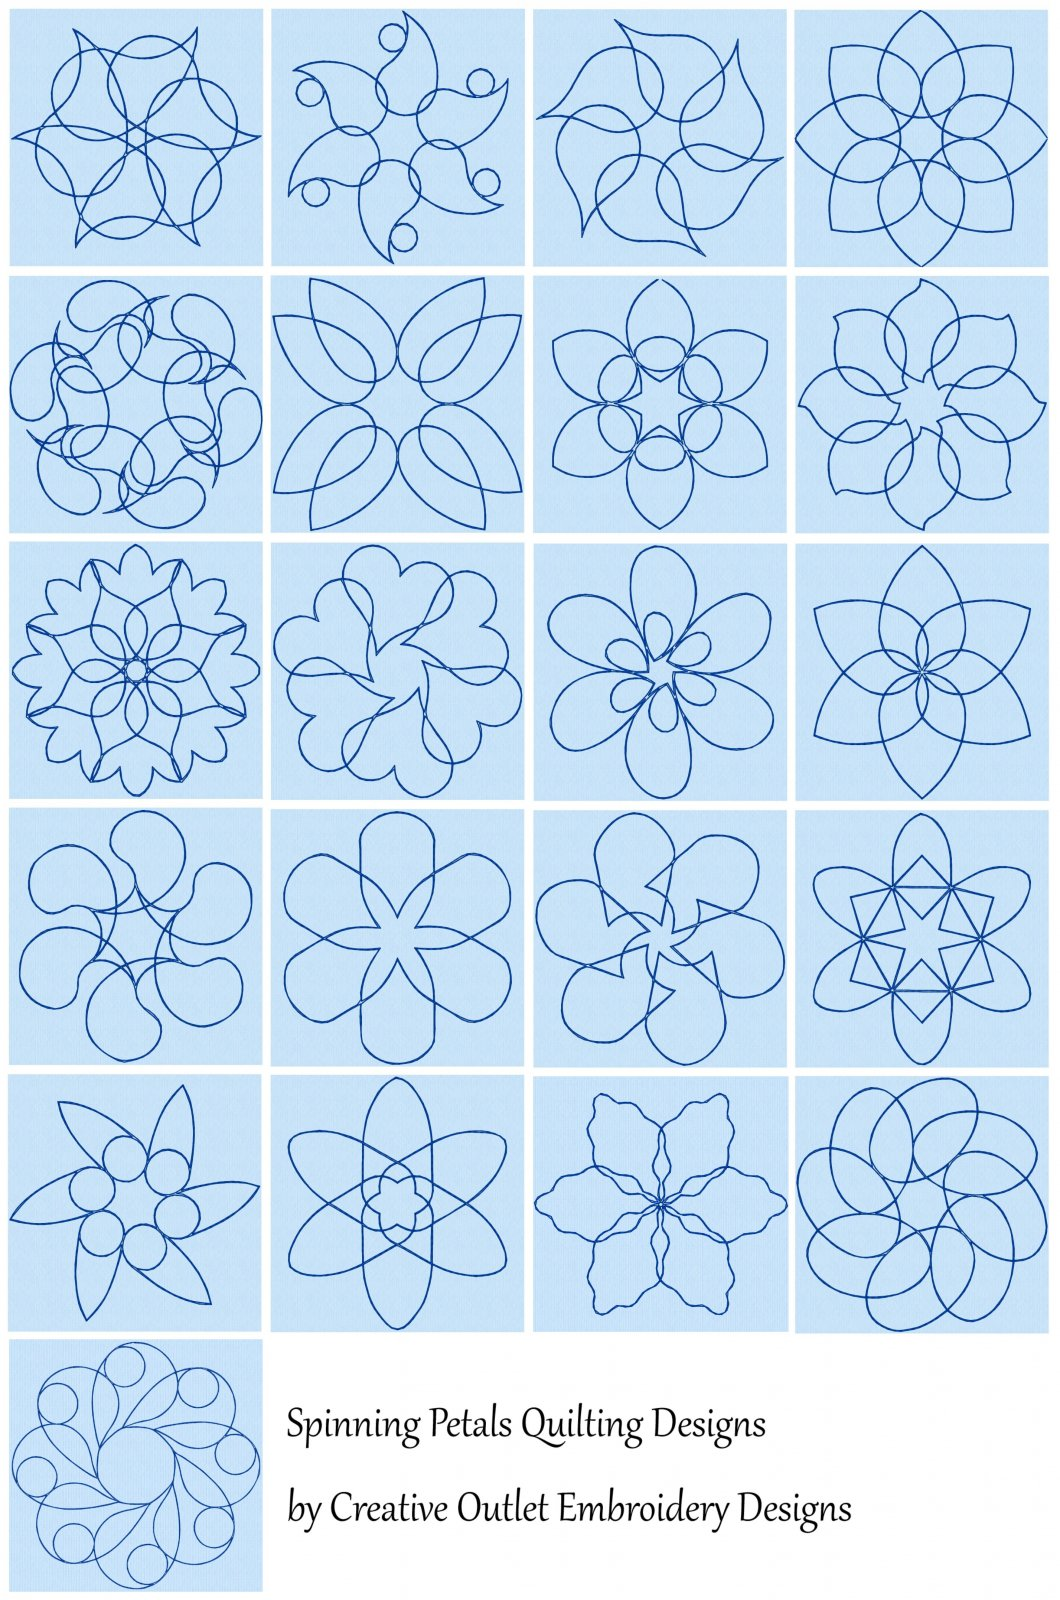 21 Spinning Petals Quilting Embroidery Designs by Creative Outlet Embroidery Designs